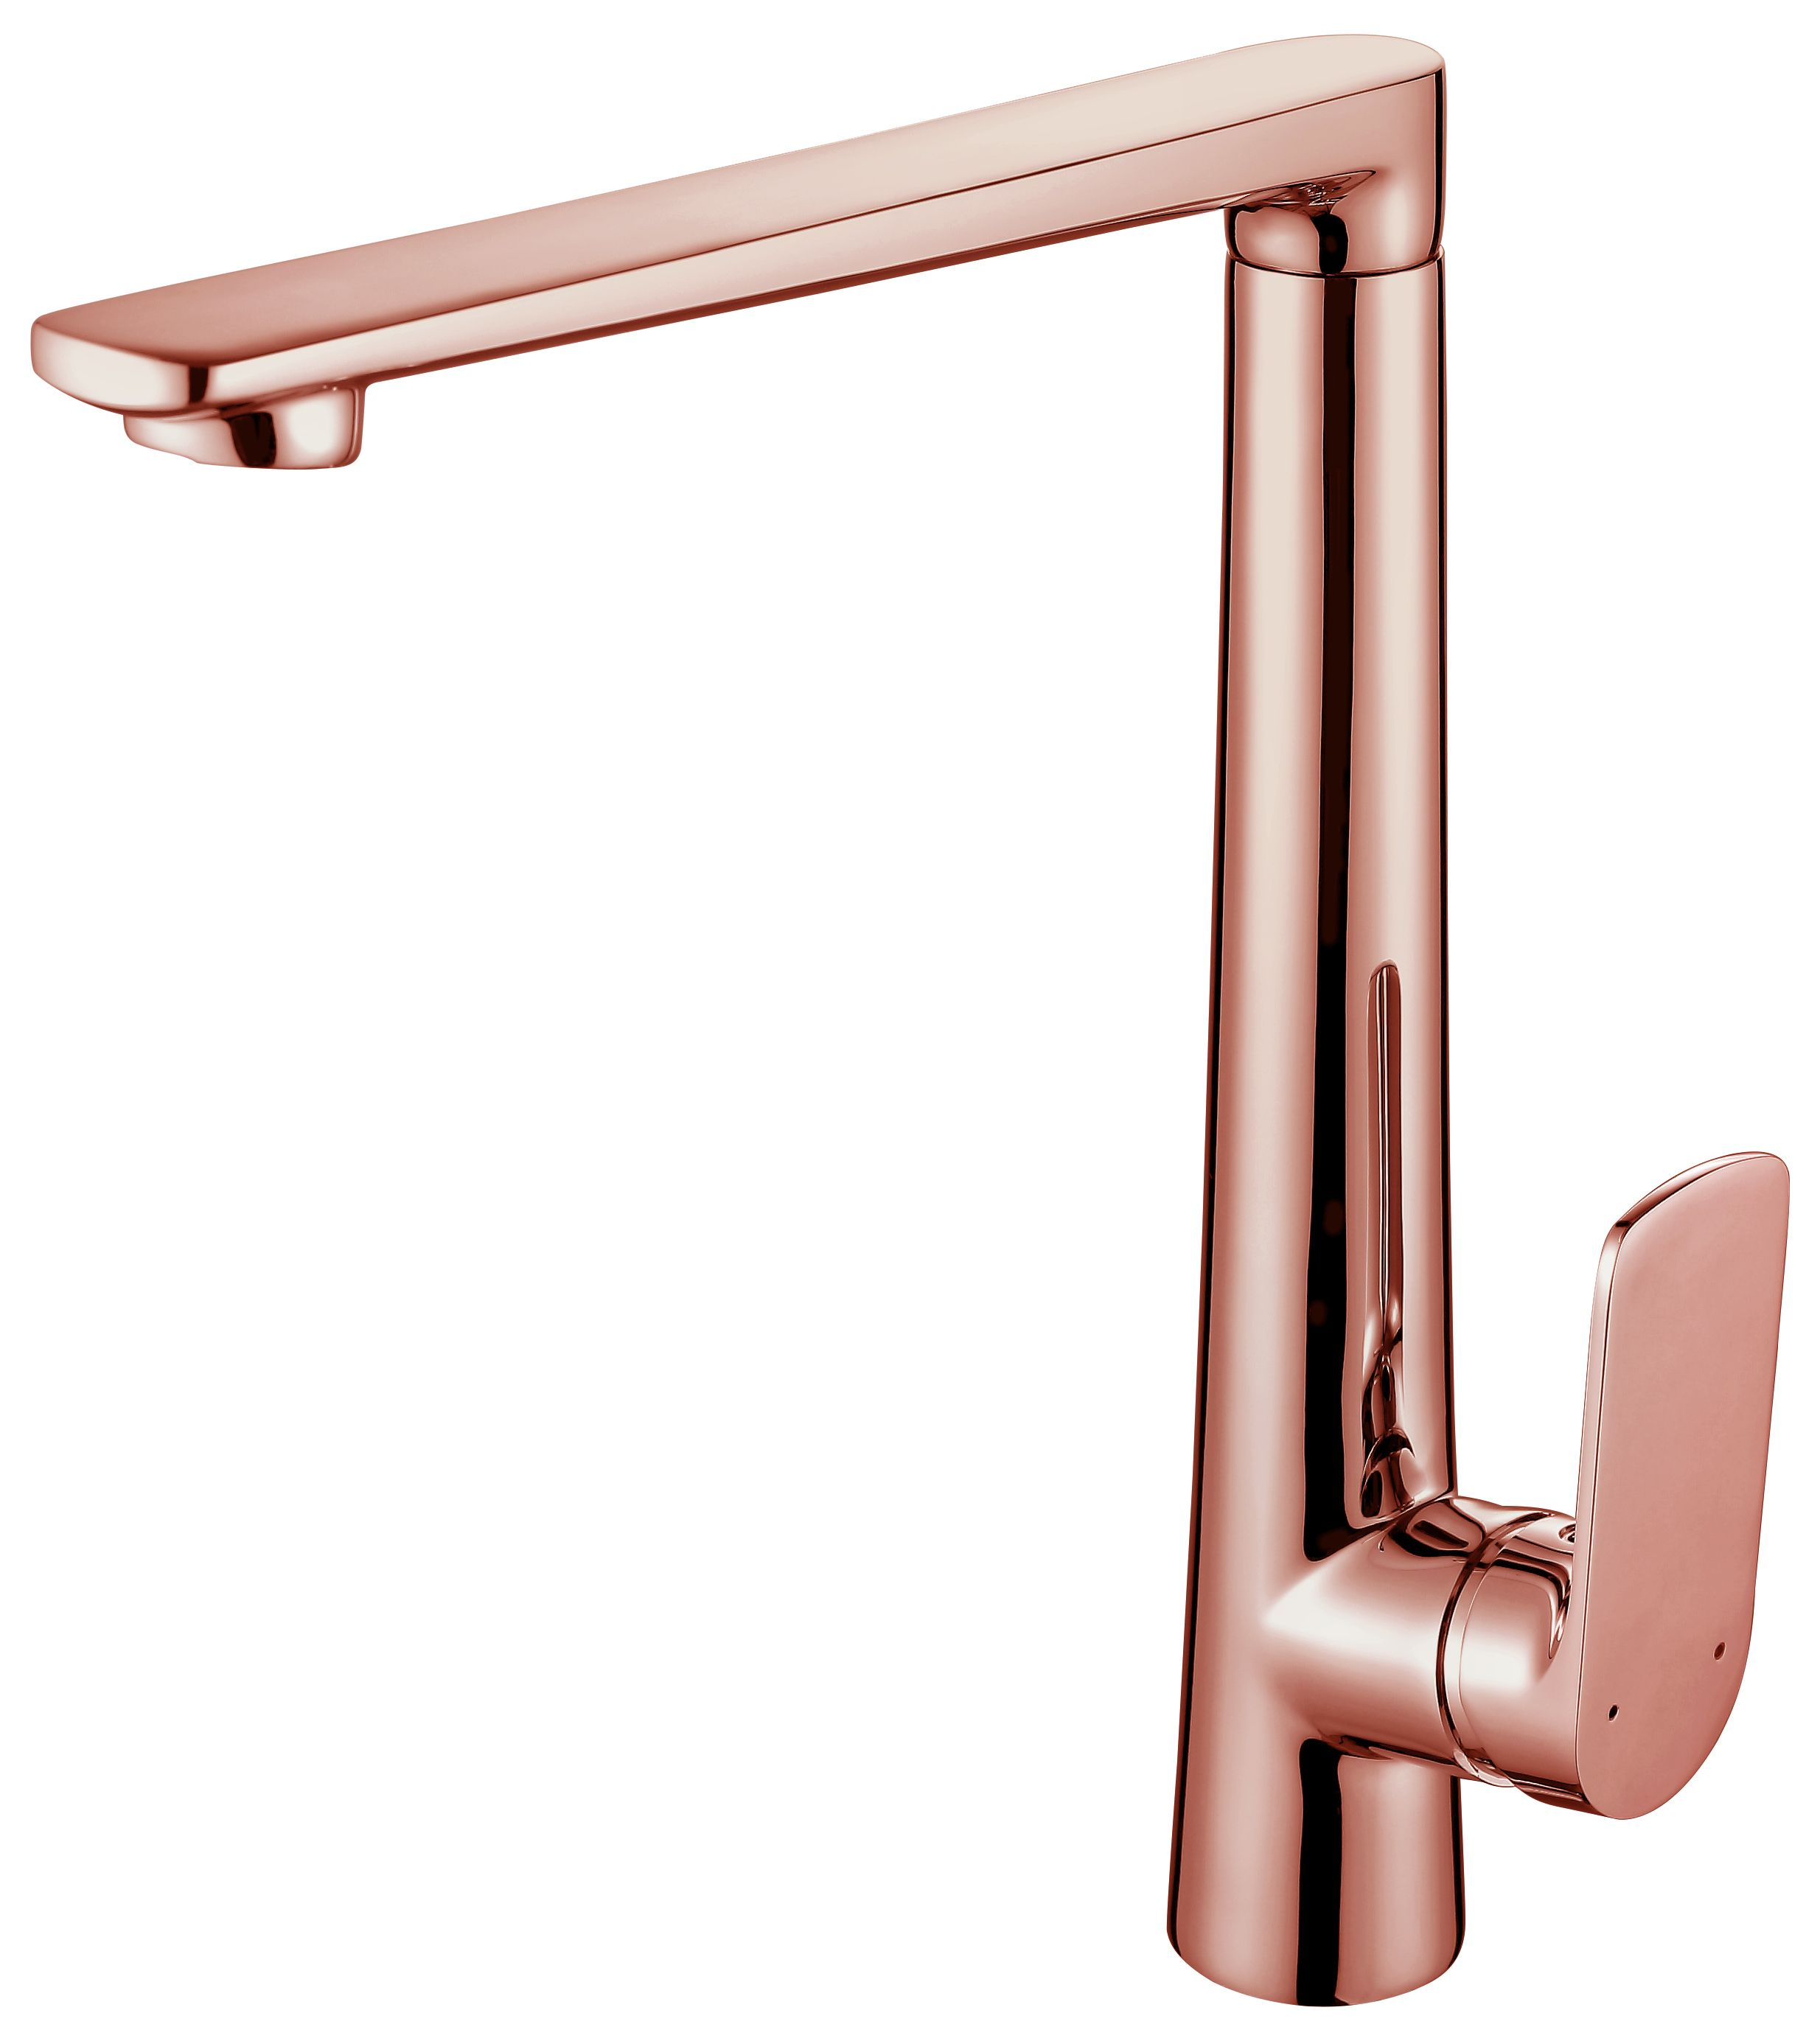 luxury faucet brass of faucets gratograt monterrey sink commercial photos awesome mercial gooseneck inch centerset